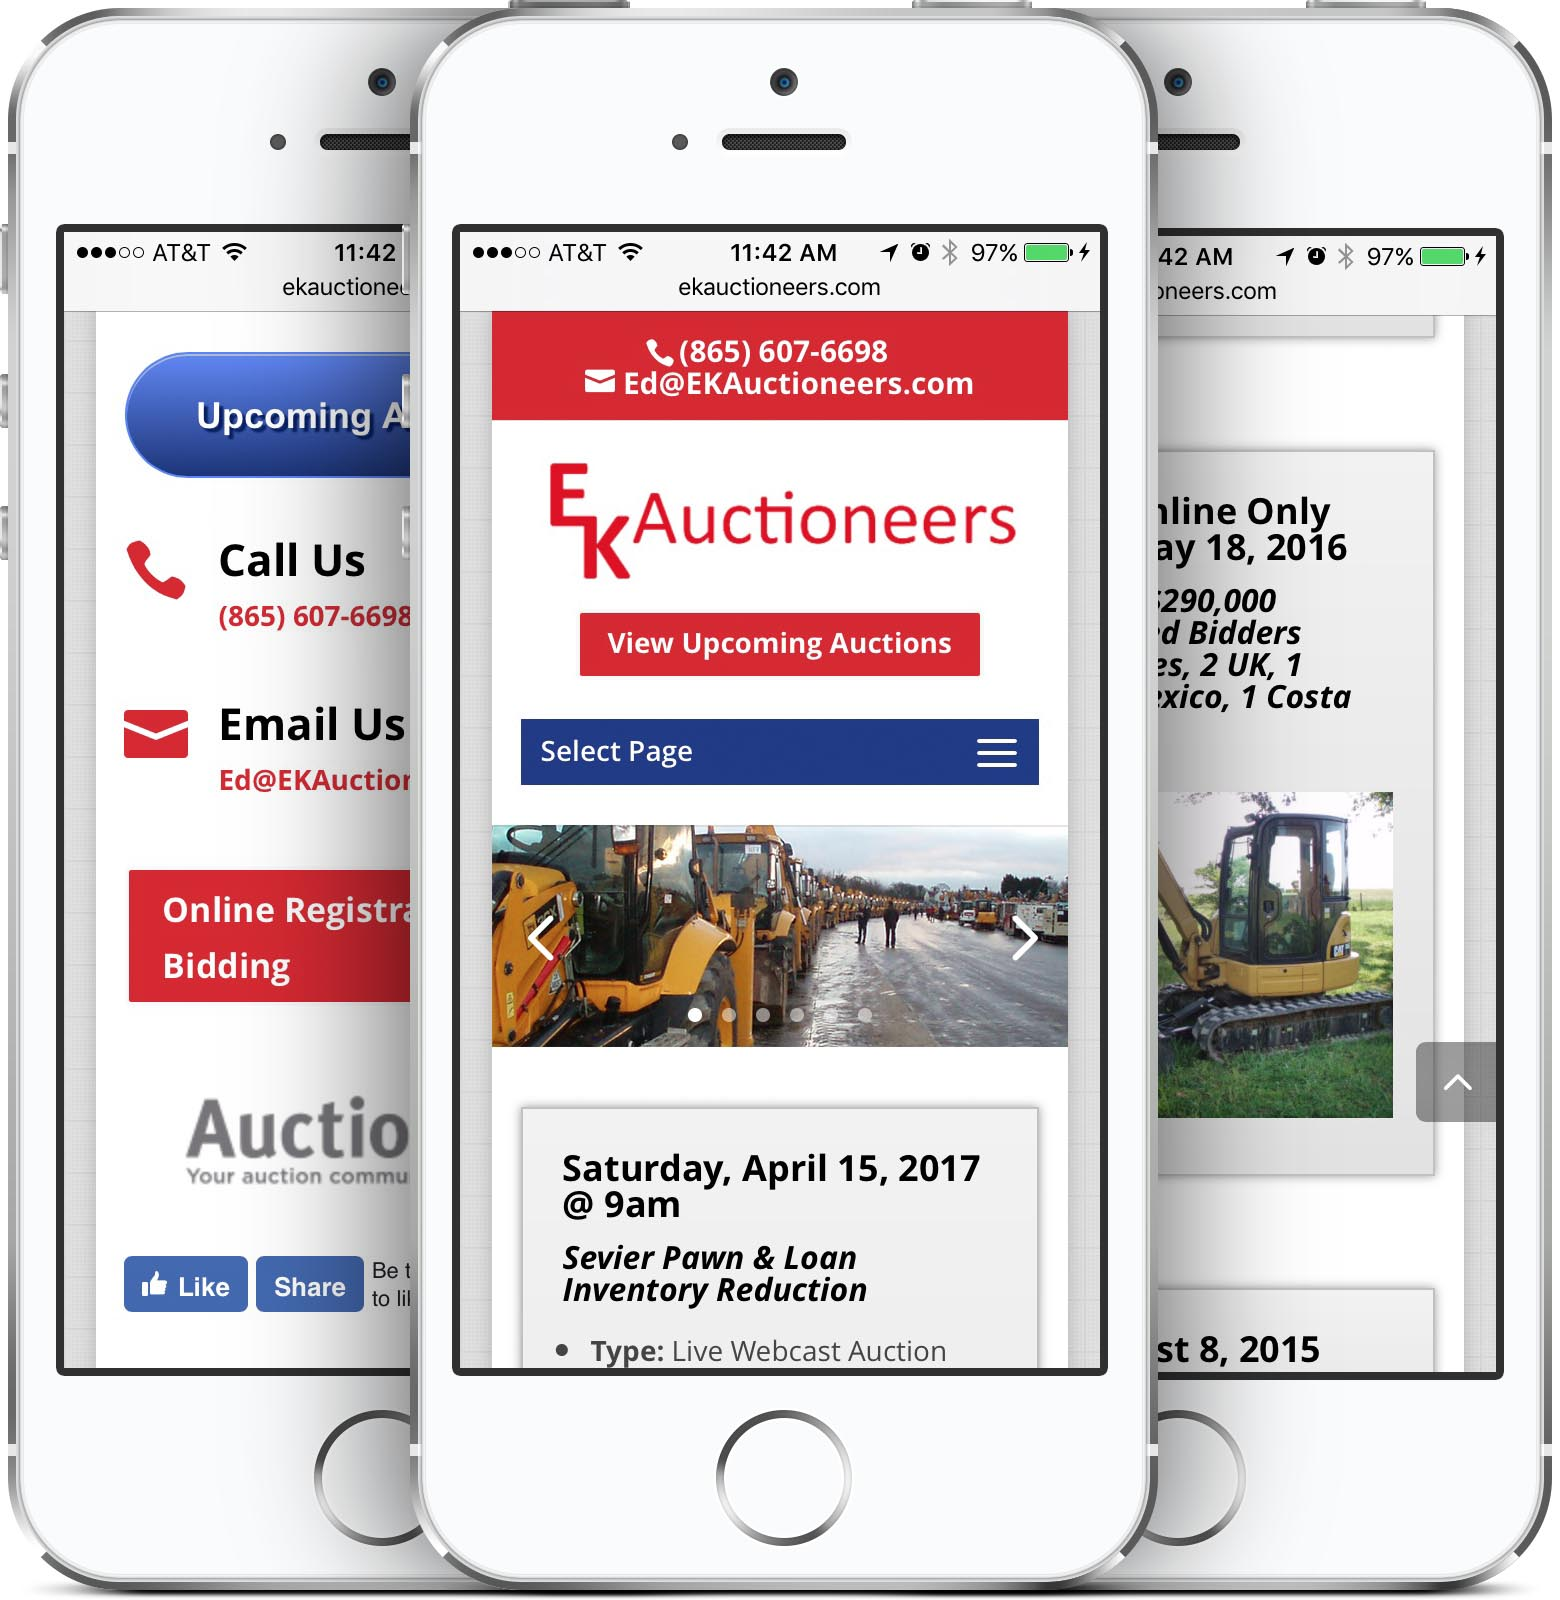 EK Auctioneers Mobile-Friendly Web Design